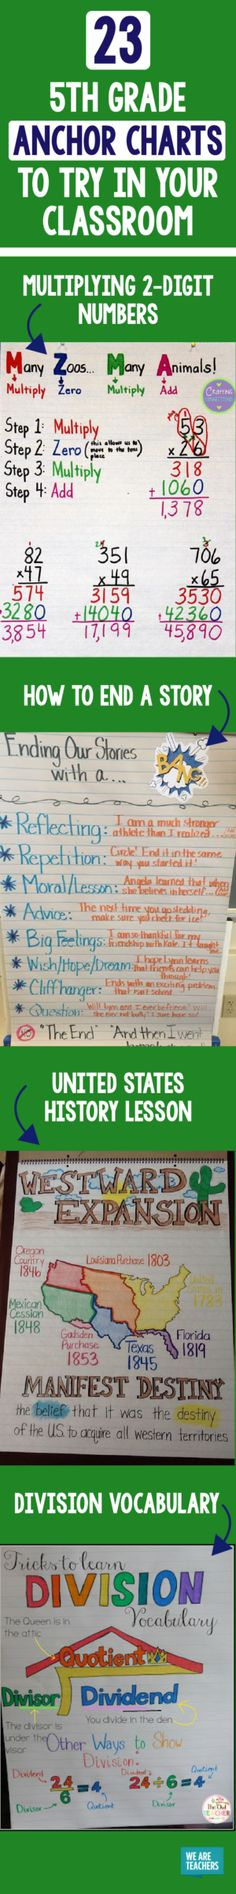 Looking for grade anchor charts? Try some of these anchor charts in your classroom to promote visual learning with your students. Math Strategies, Math Resources, Preschool Activities, Common Core Standards, Fifth Grade Math, Fourth Grade, Third Grade, 5th Grade Classroom, Classroom Ideas